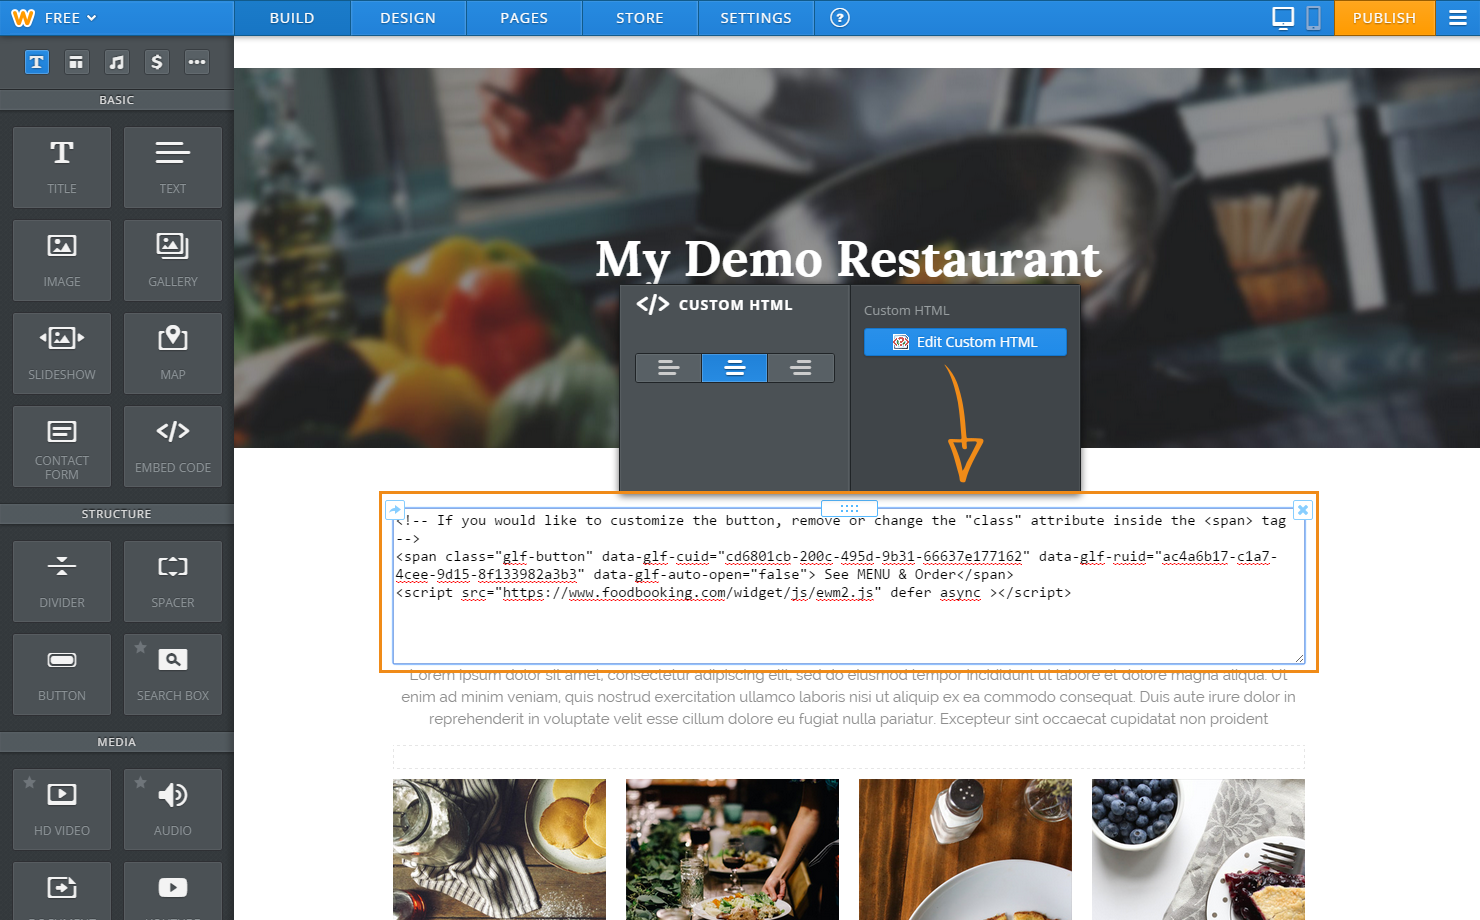 paste the cutom online ordering button code